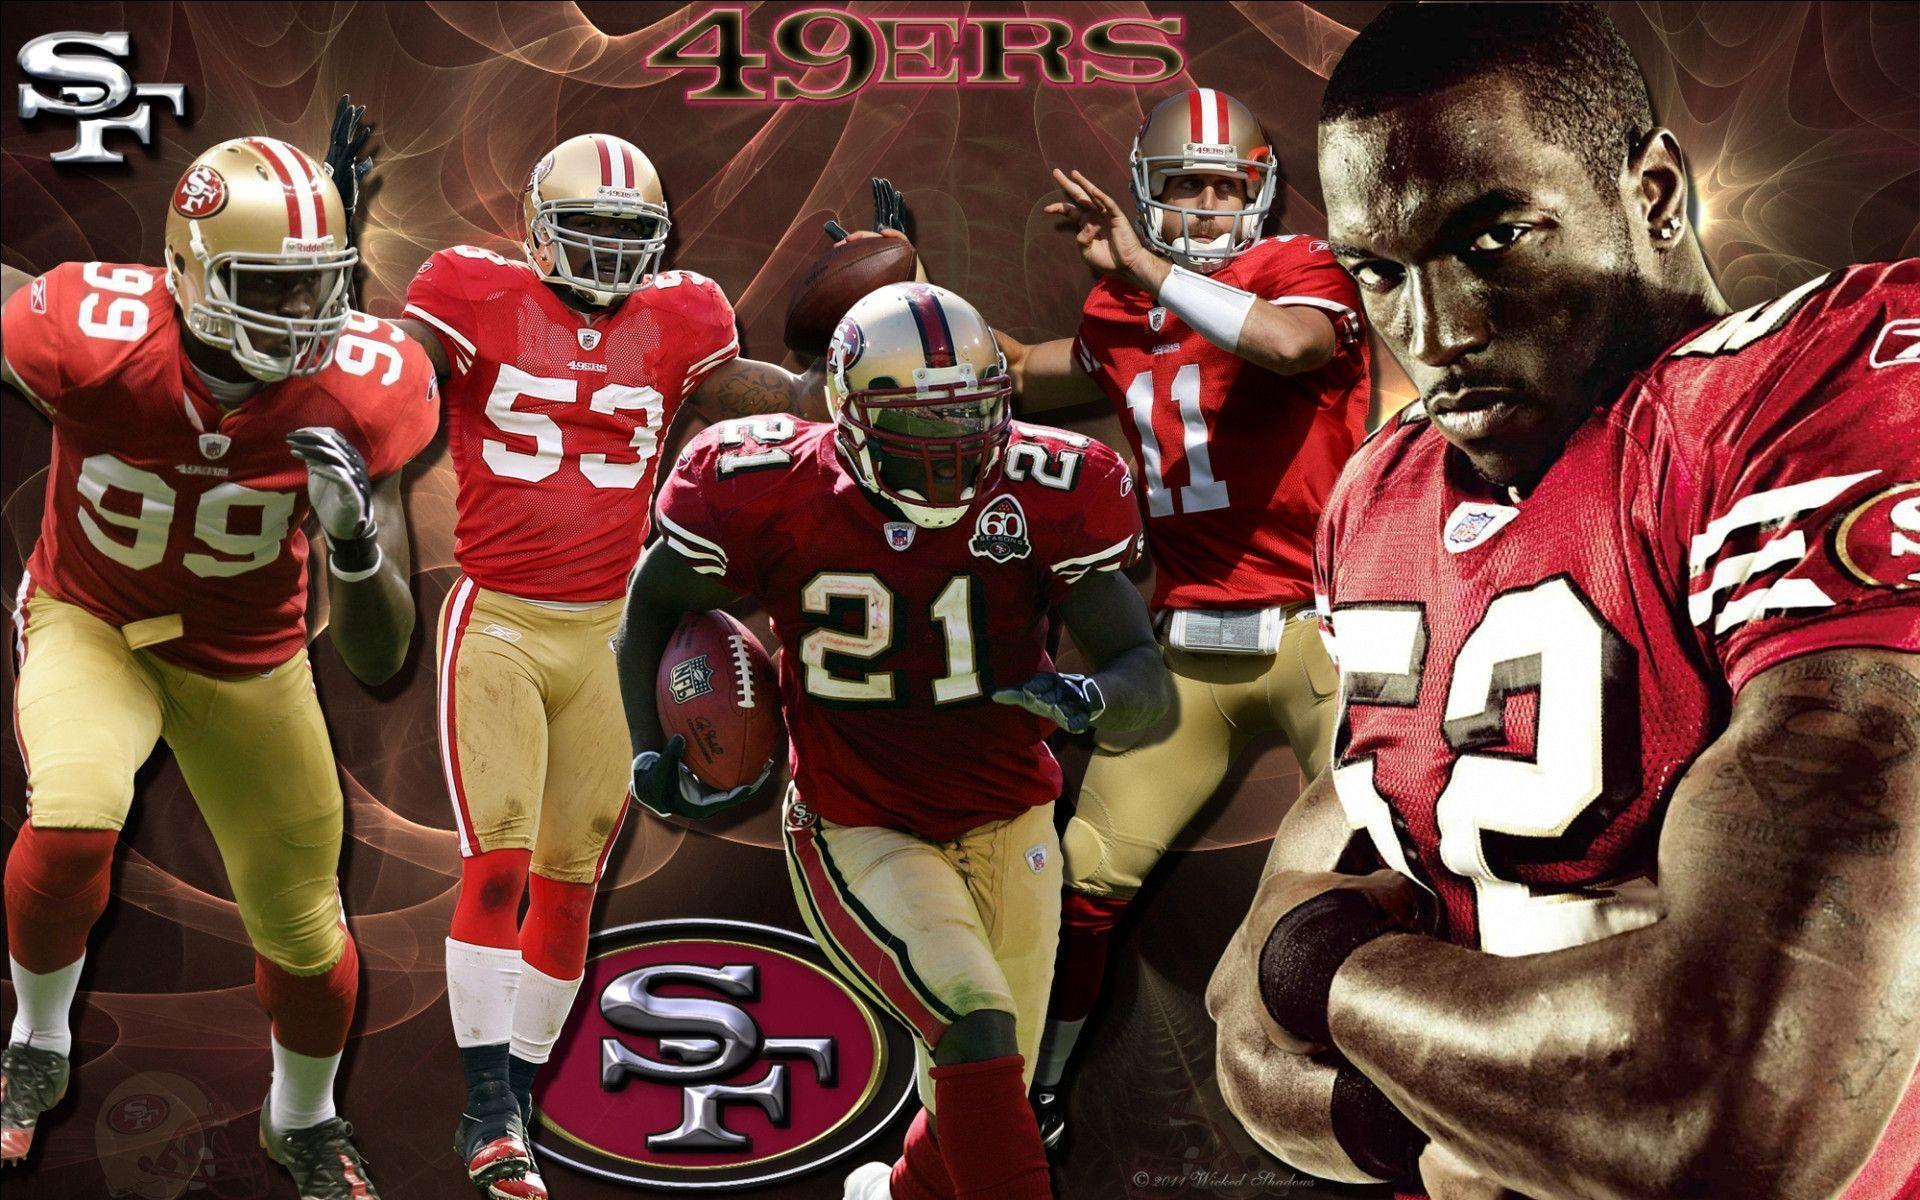 Exciting San Francisco 49ers 2013 Wallpaper 2013, | Image Browse